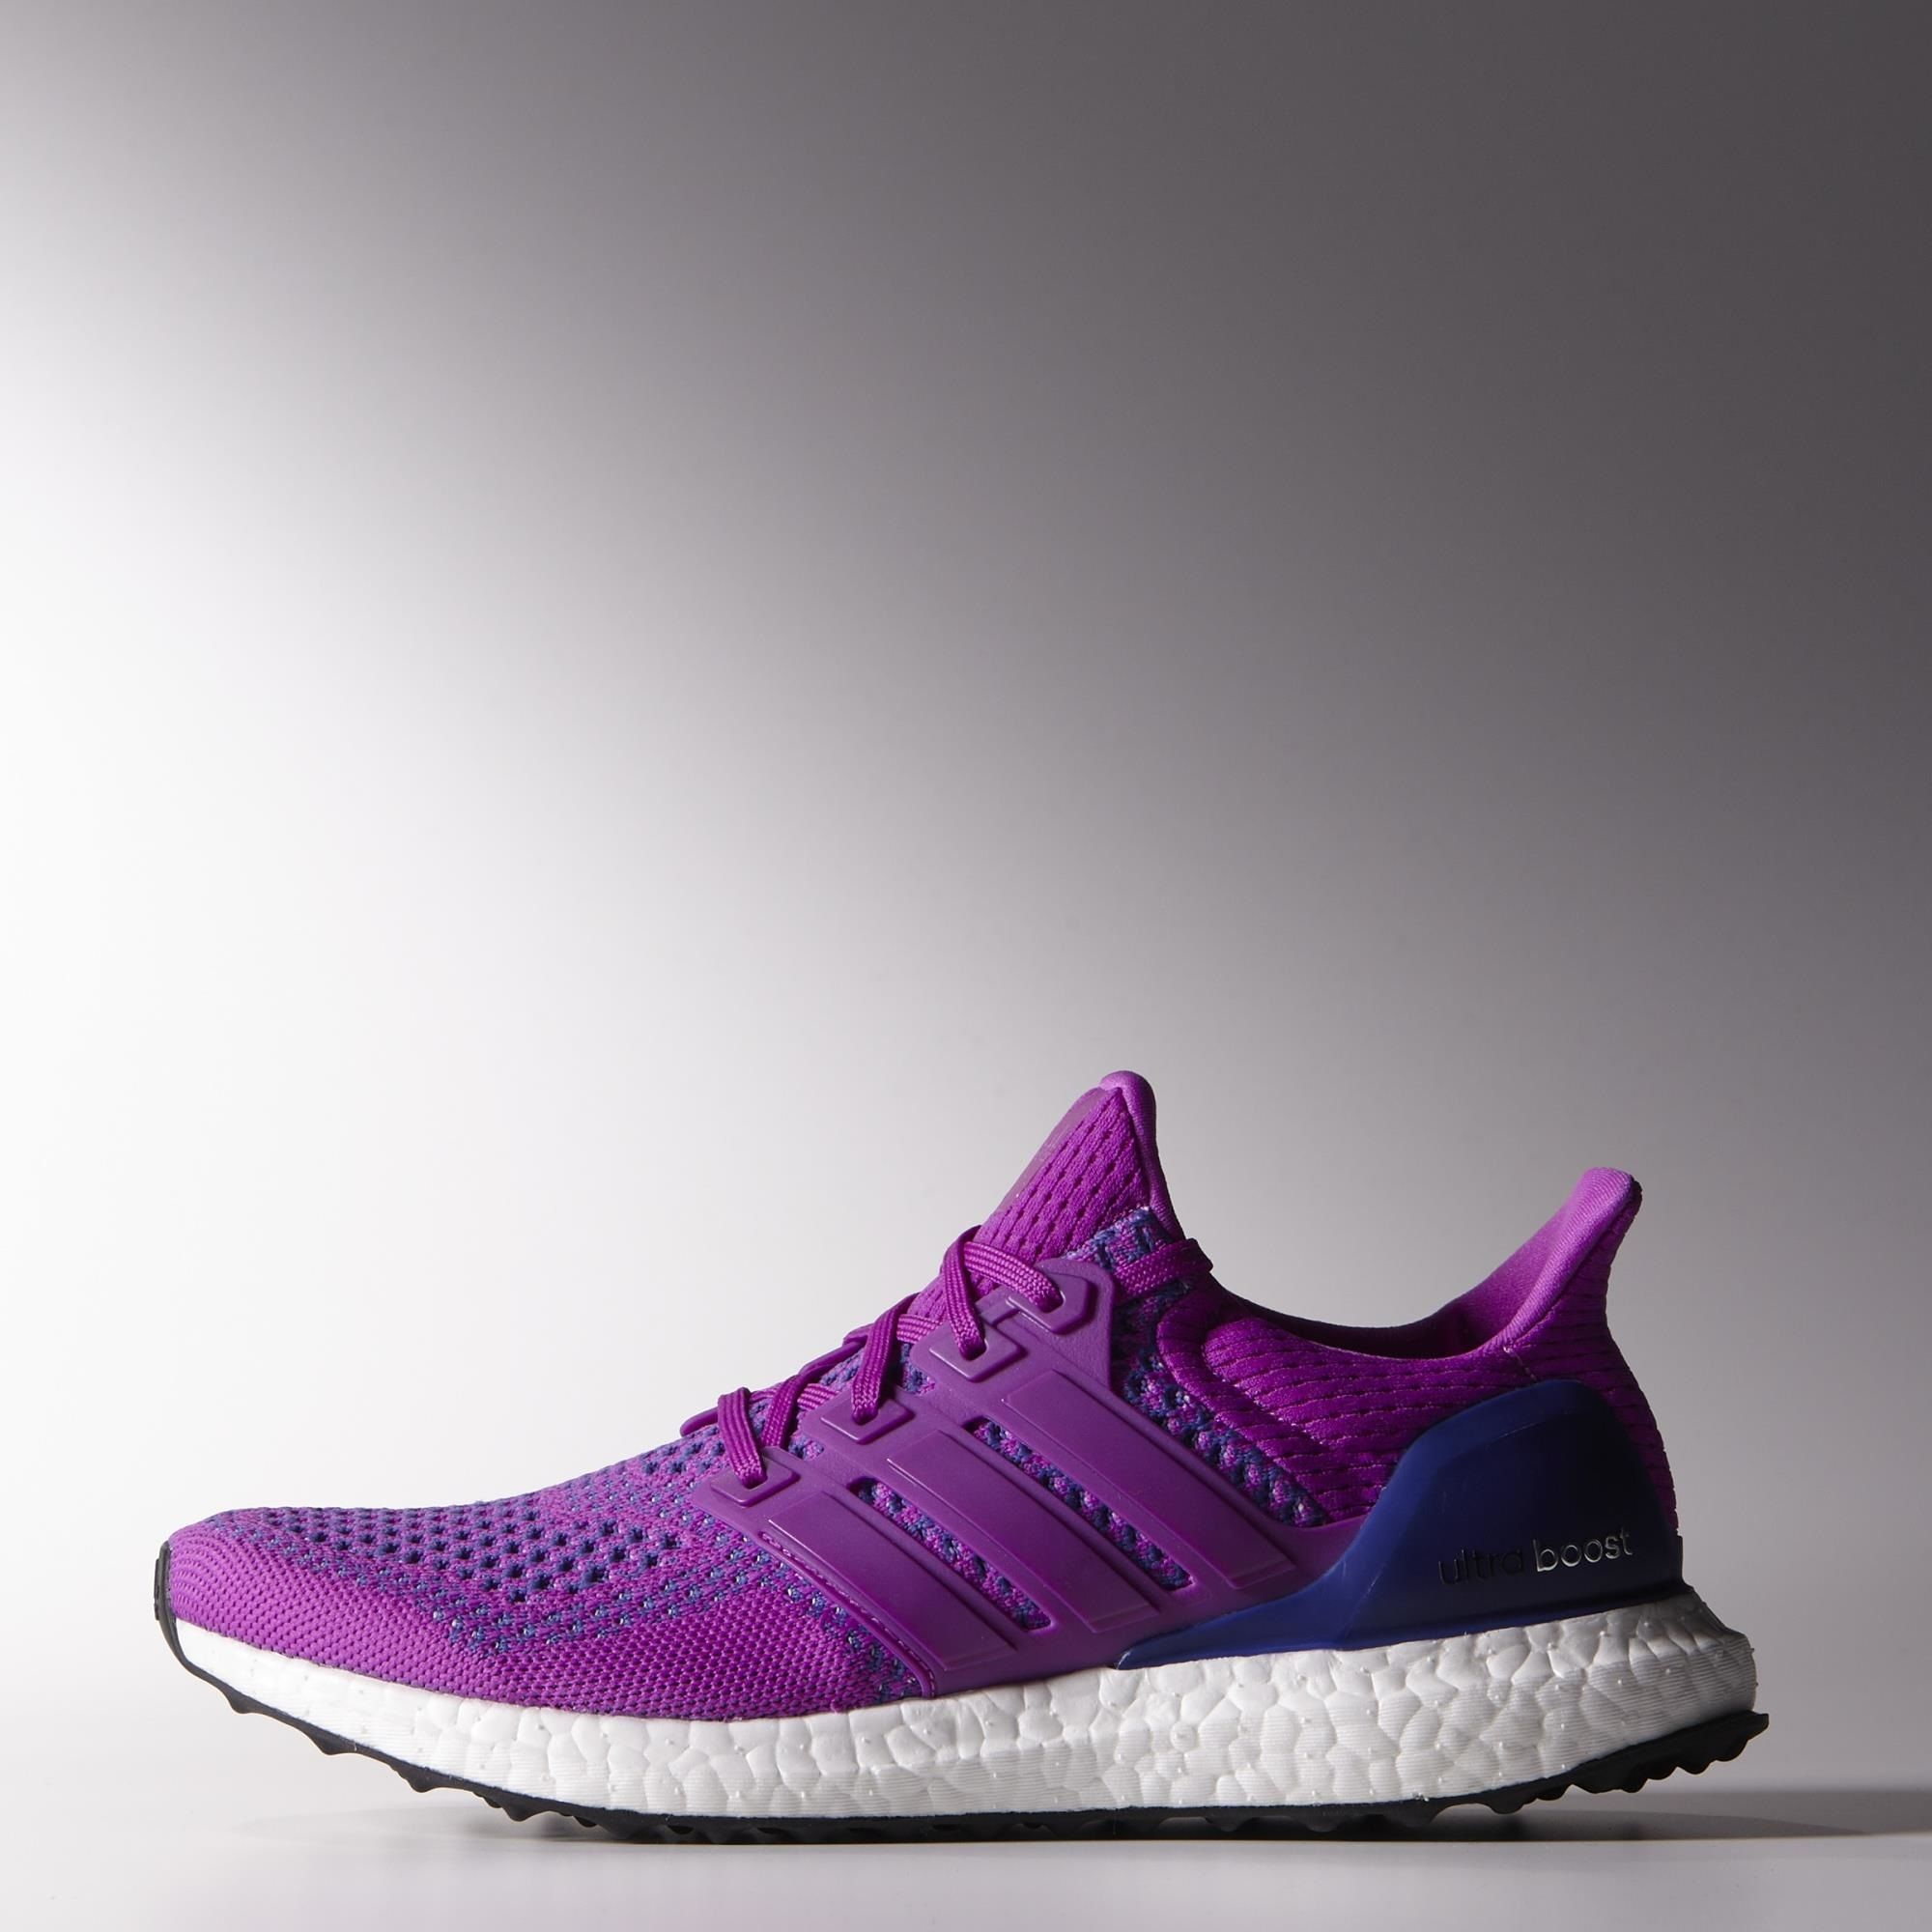 07c8196303cc8 adidas Ultra Boost Shoes - Pink